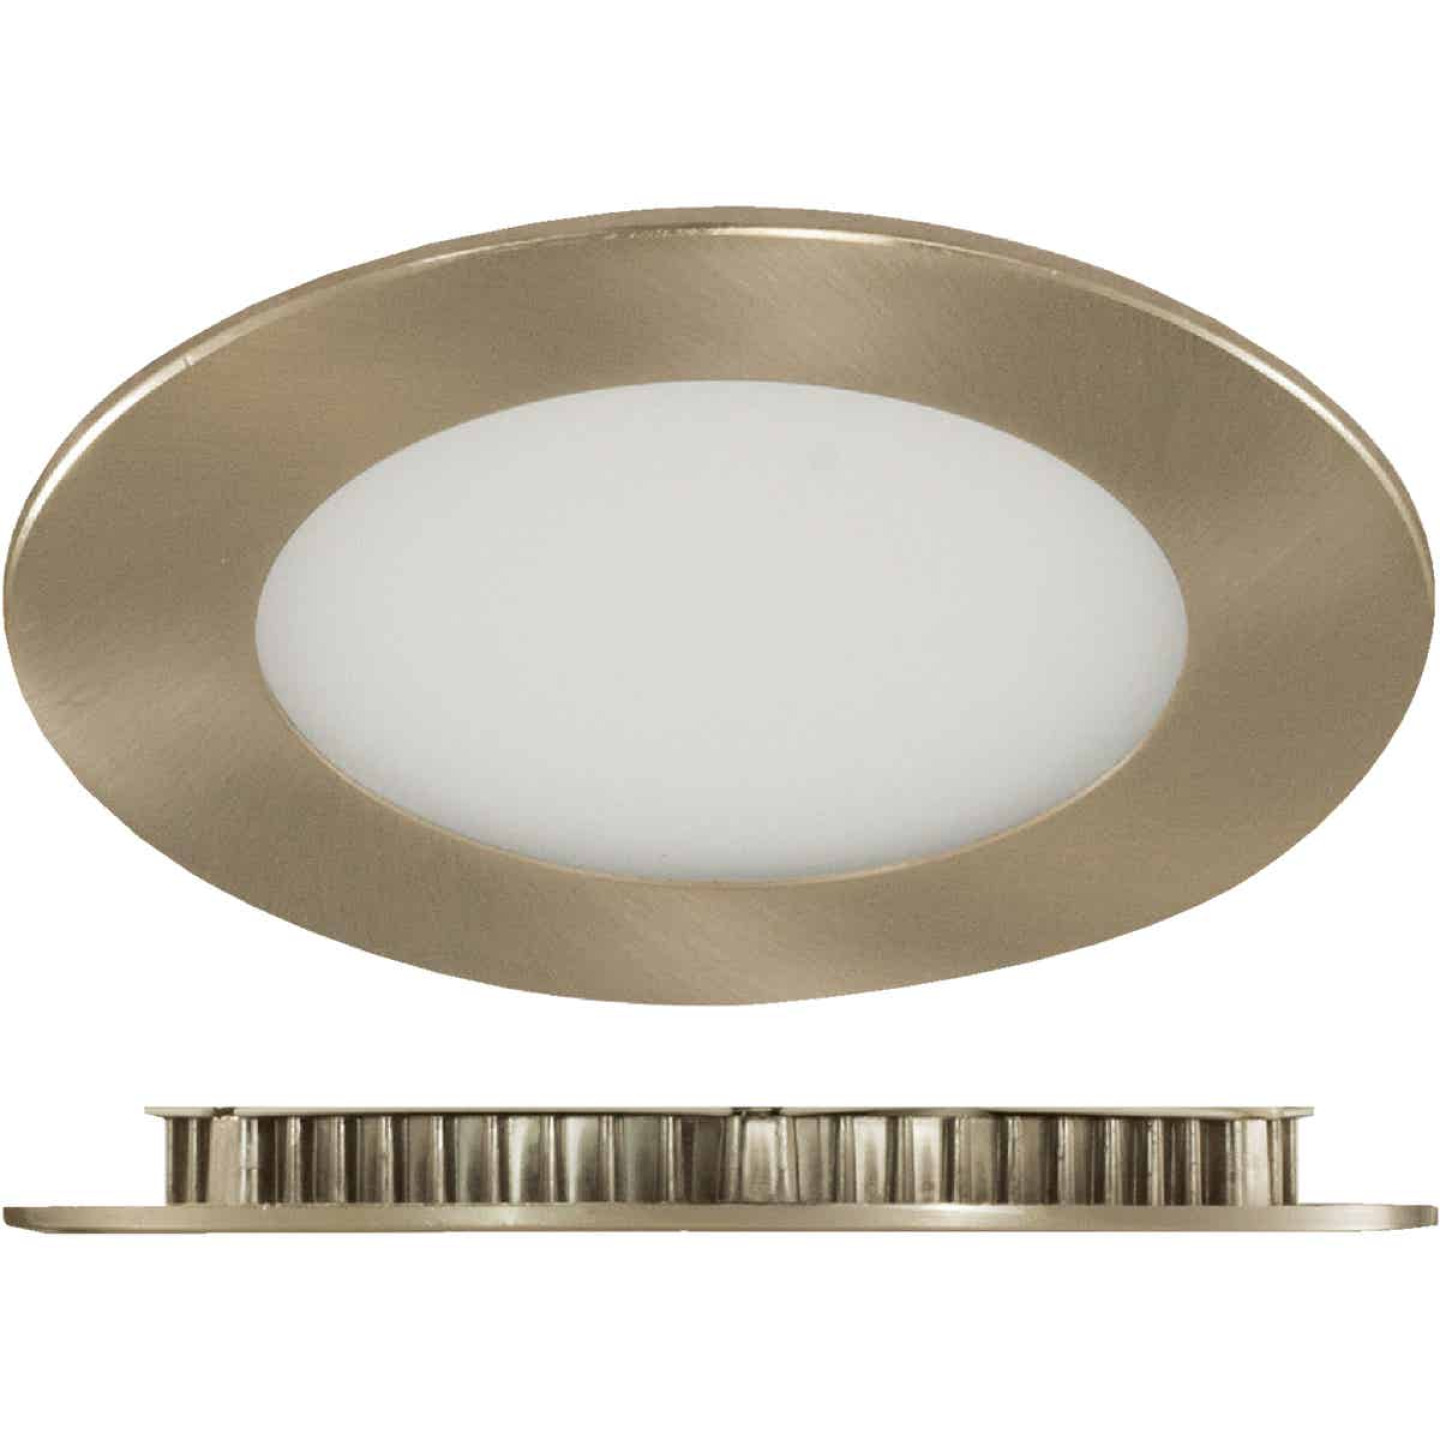 Liteline Trenz ThinLED 4 In. New Construction/Remodel IC Rated White 575 Lm. 3000K Recessed Light Kit Image 1